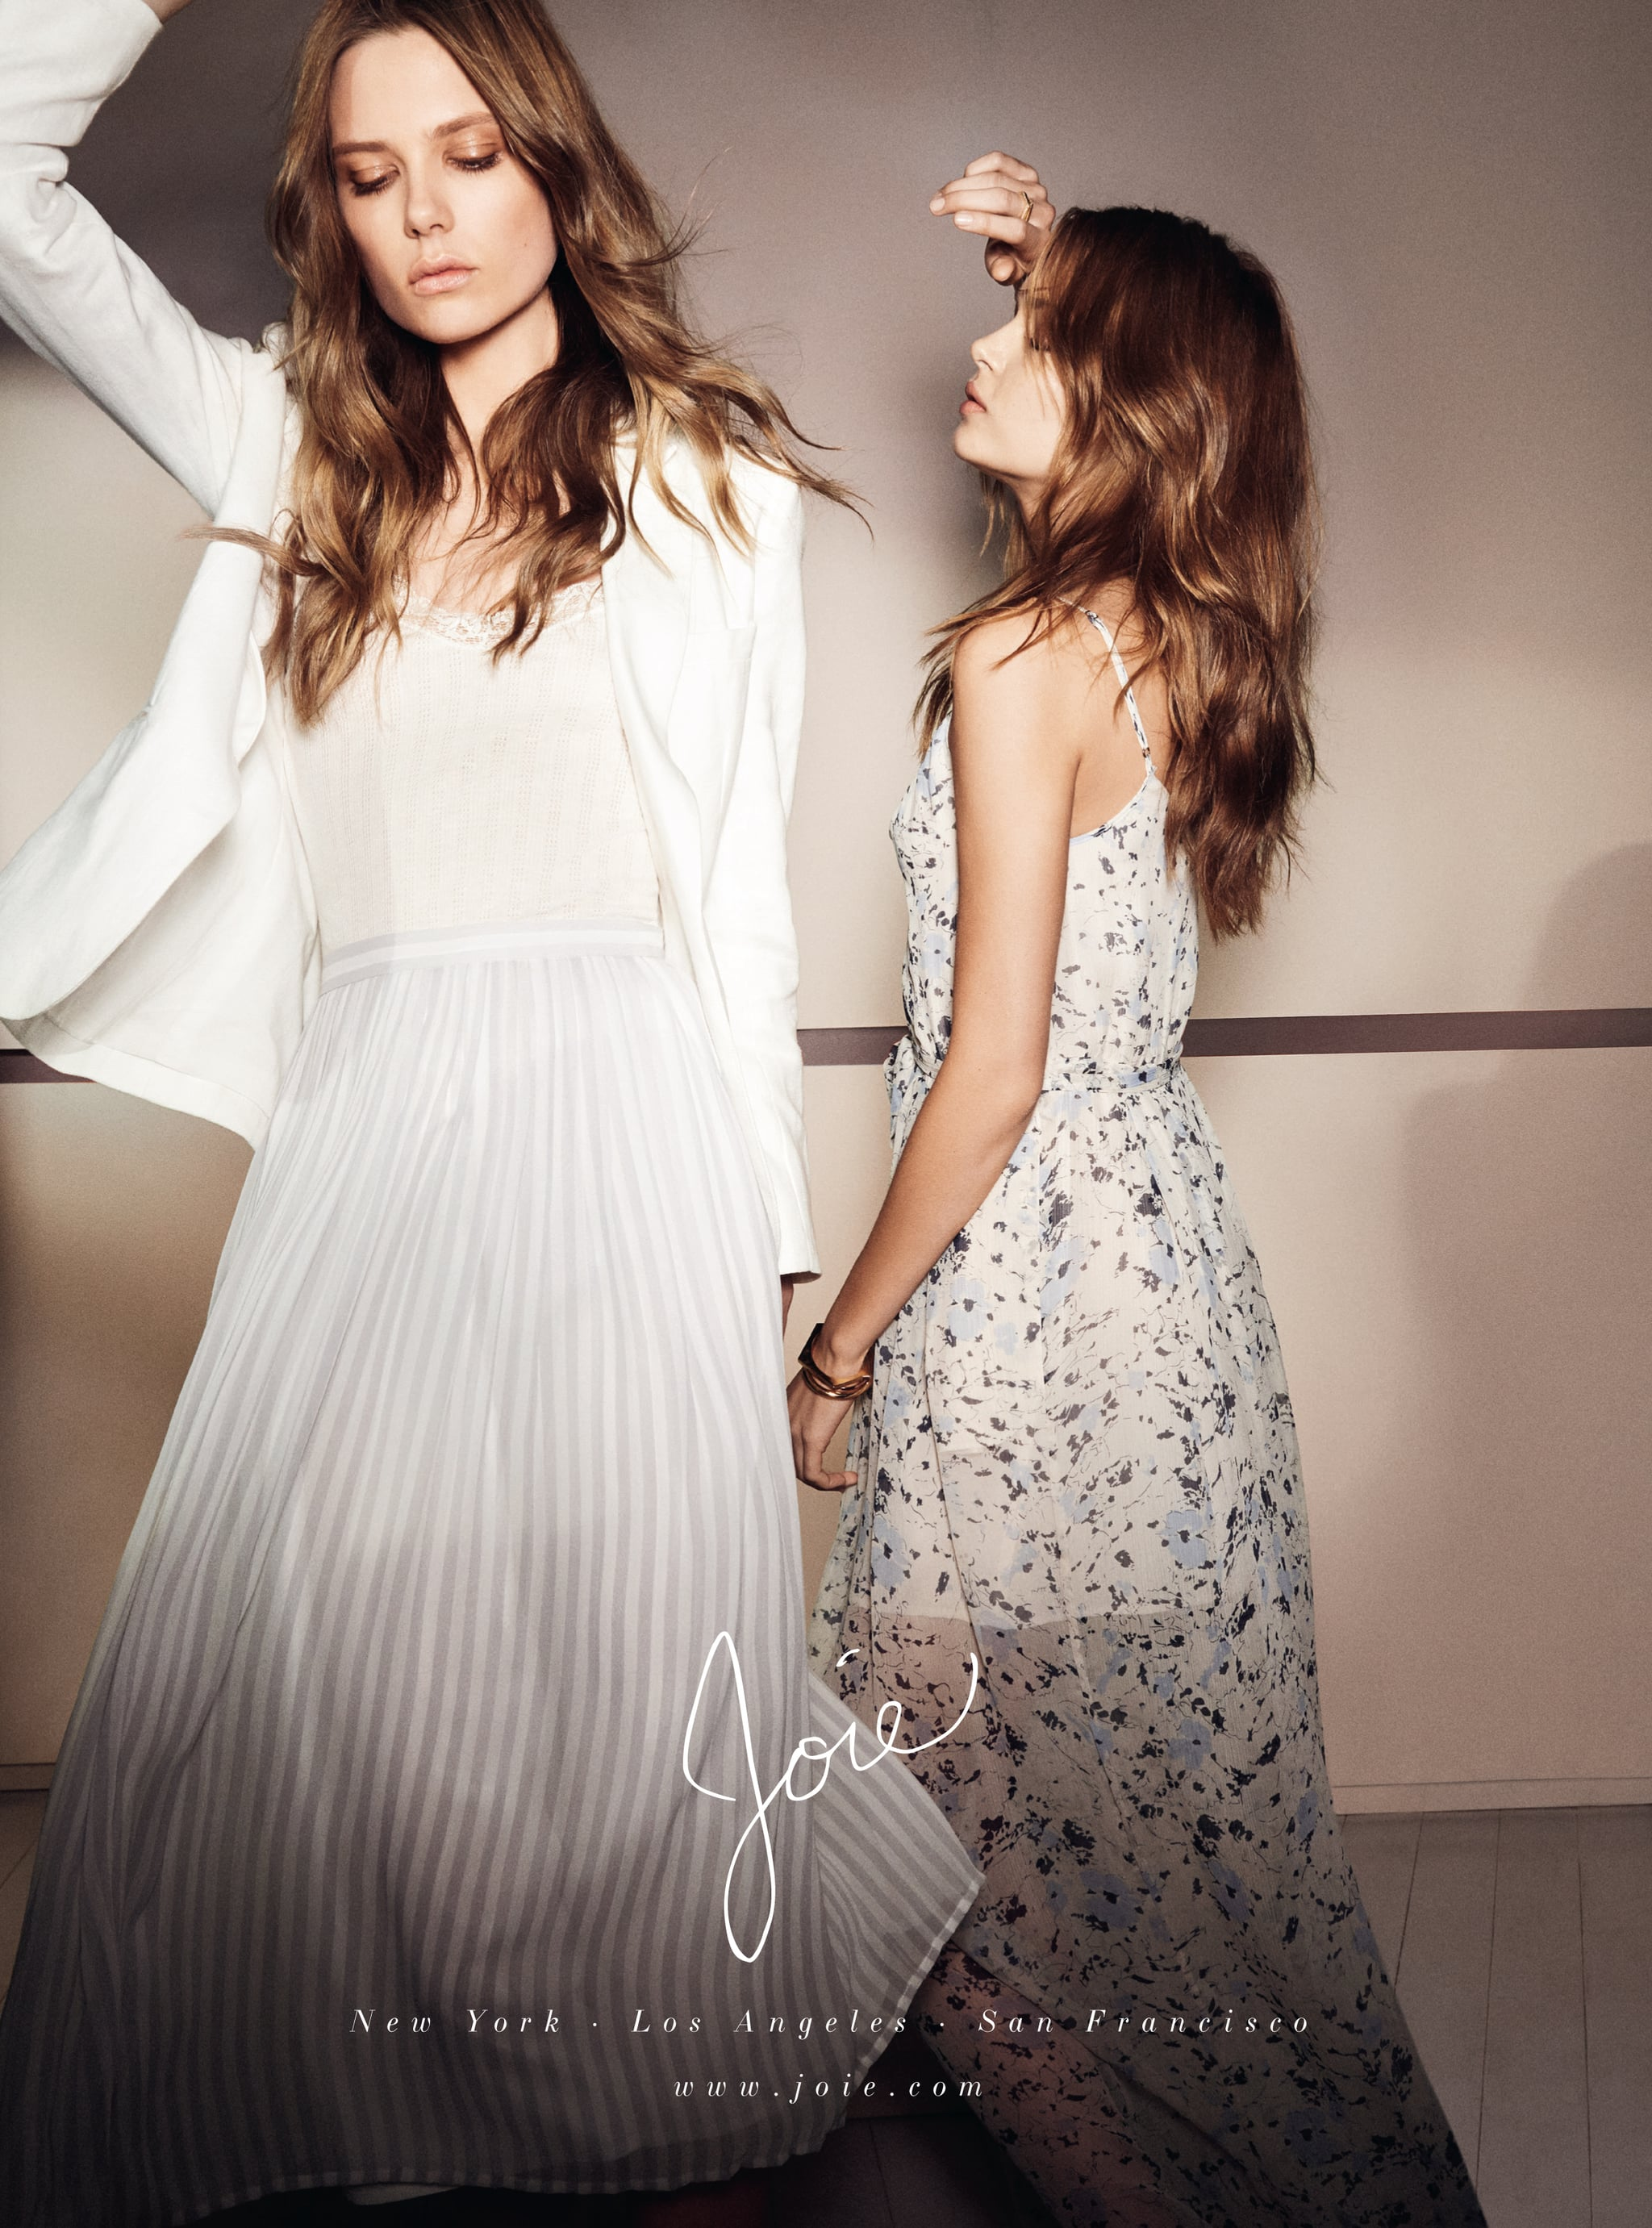 Joie Spring 2014